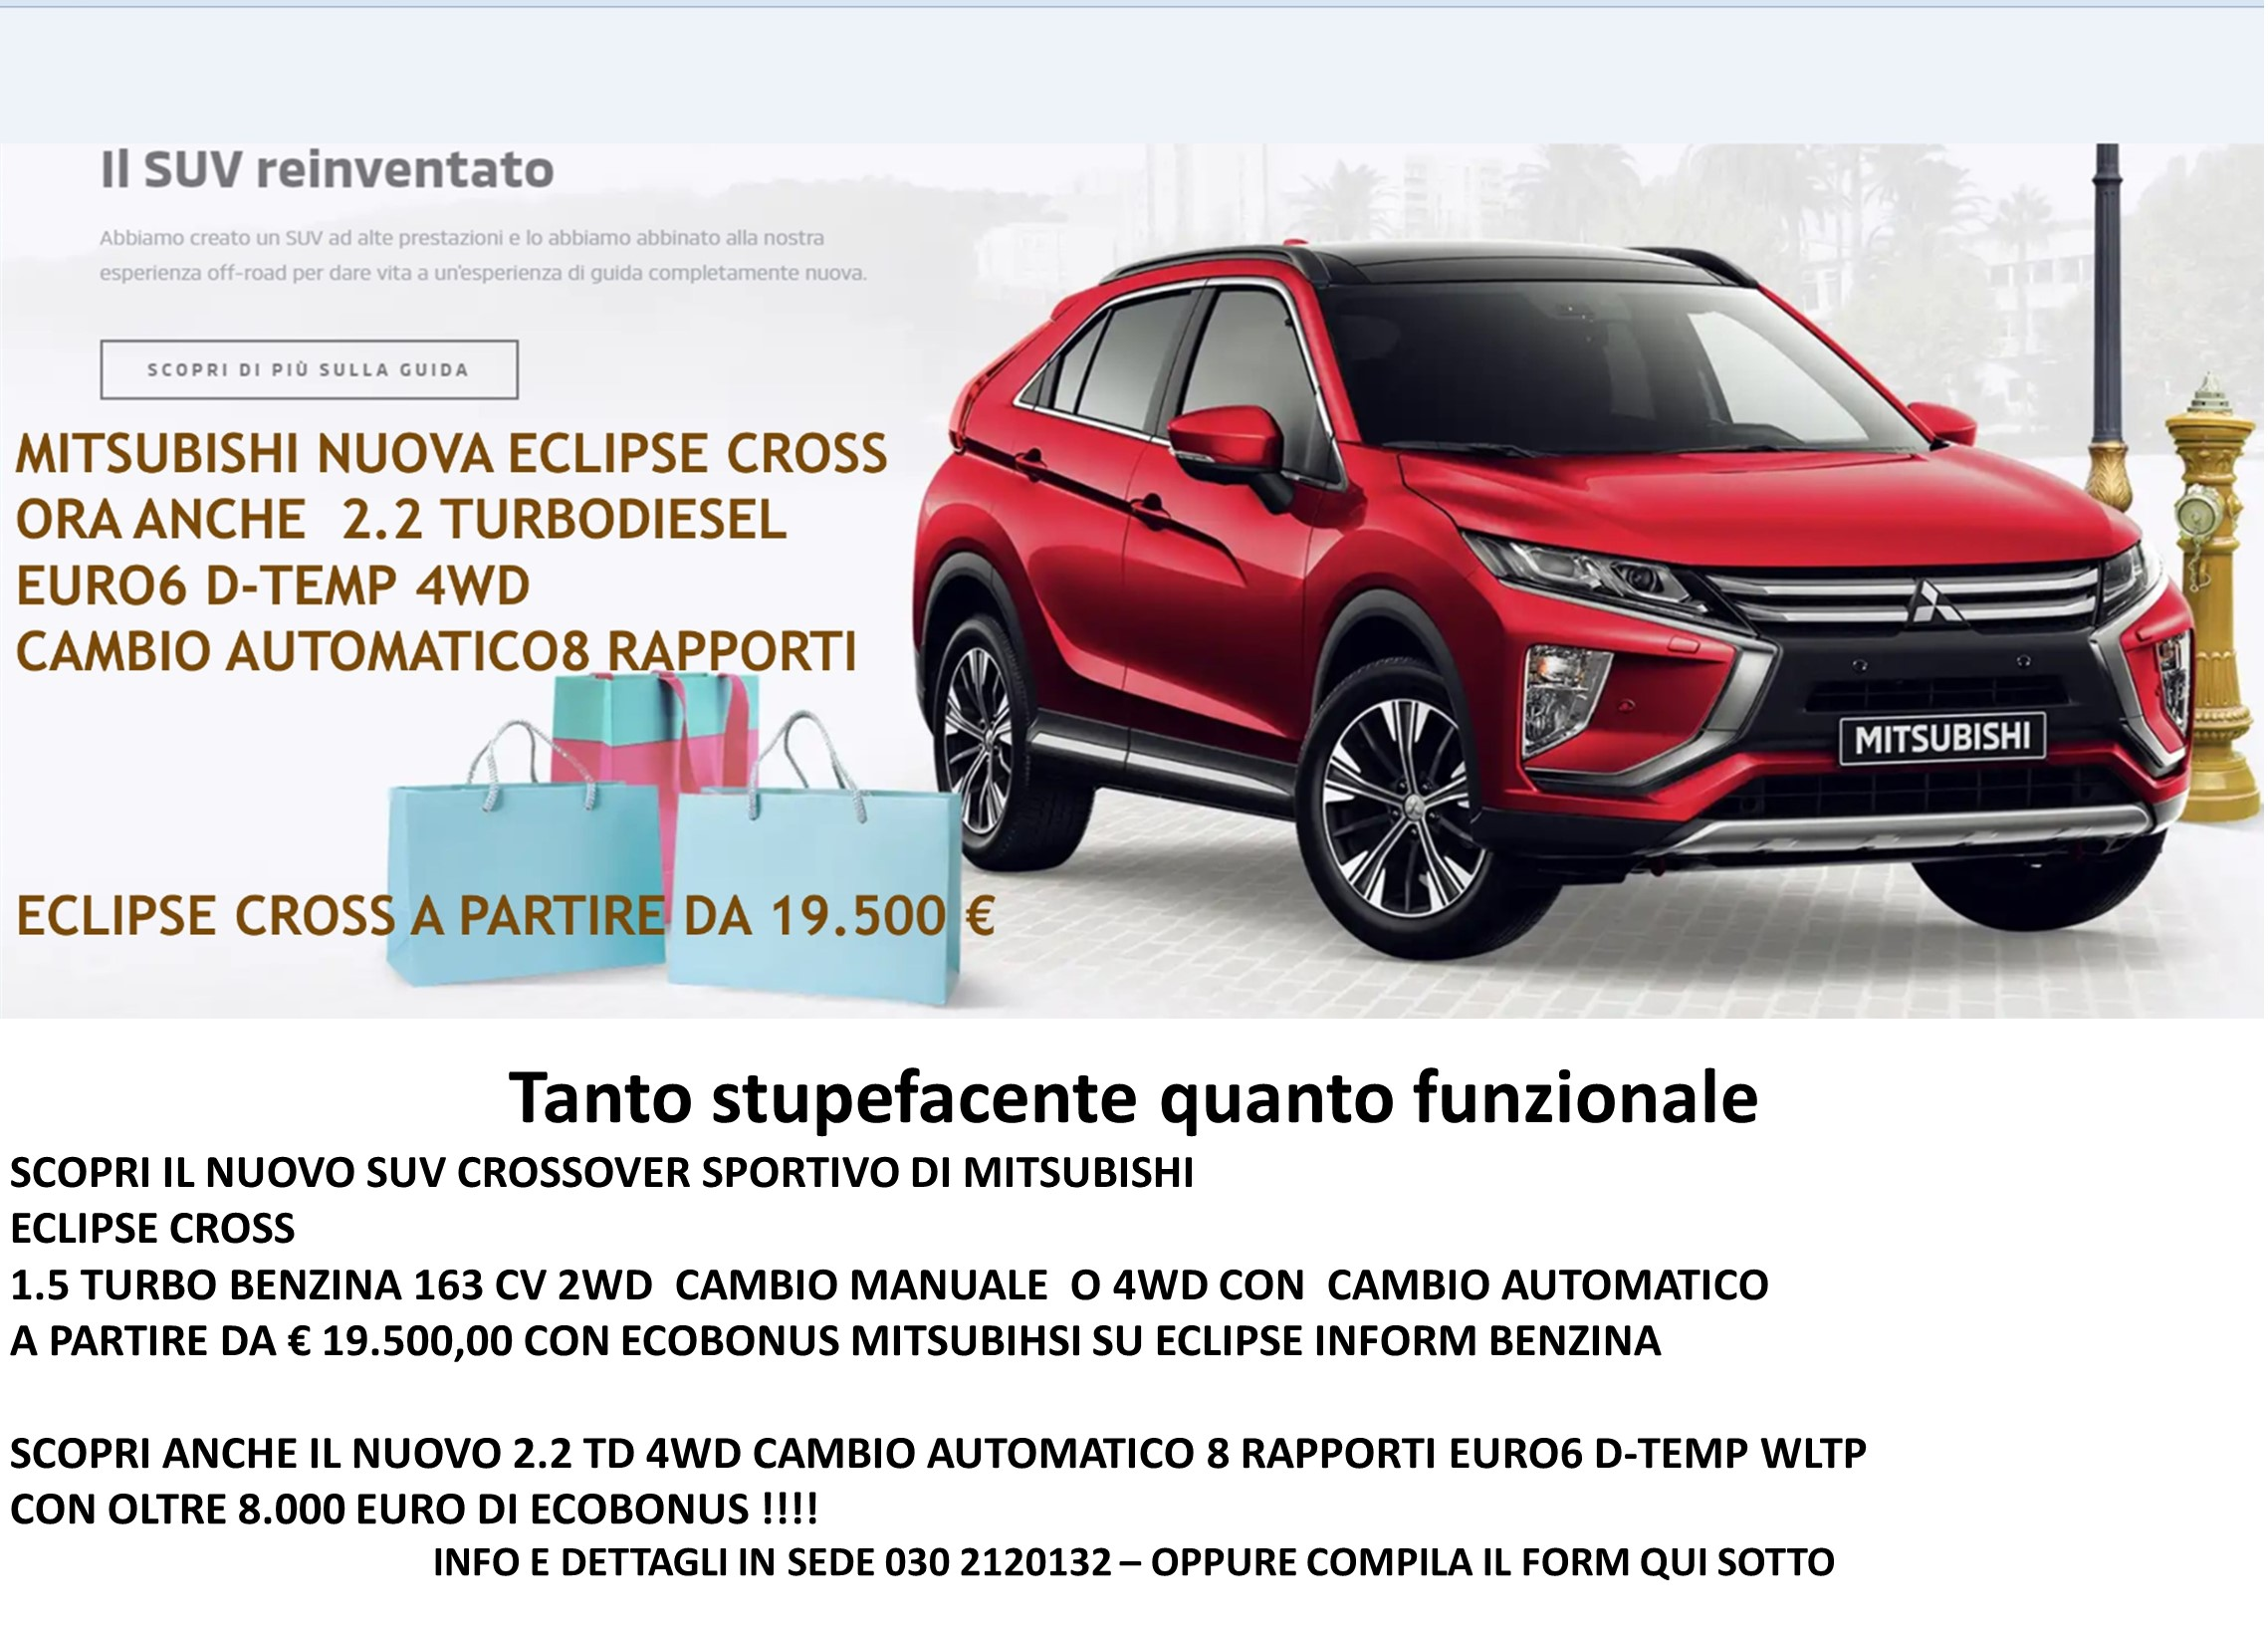 NUOVA ECLIPSE CROSS SUV COUPE' , ANCHE DIESEL 4WD AT